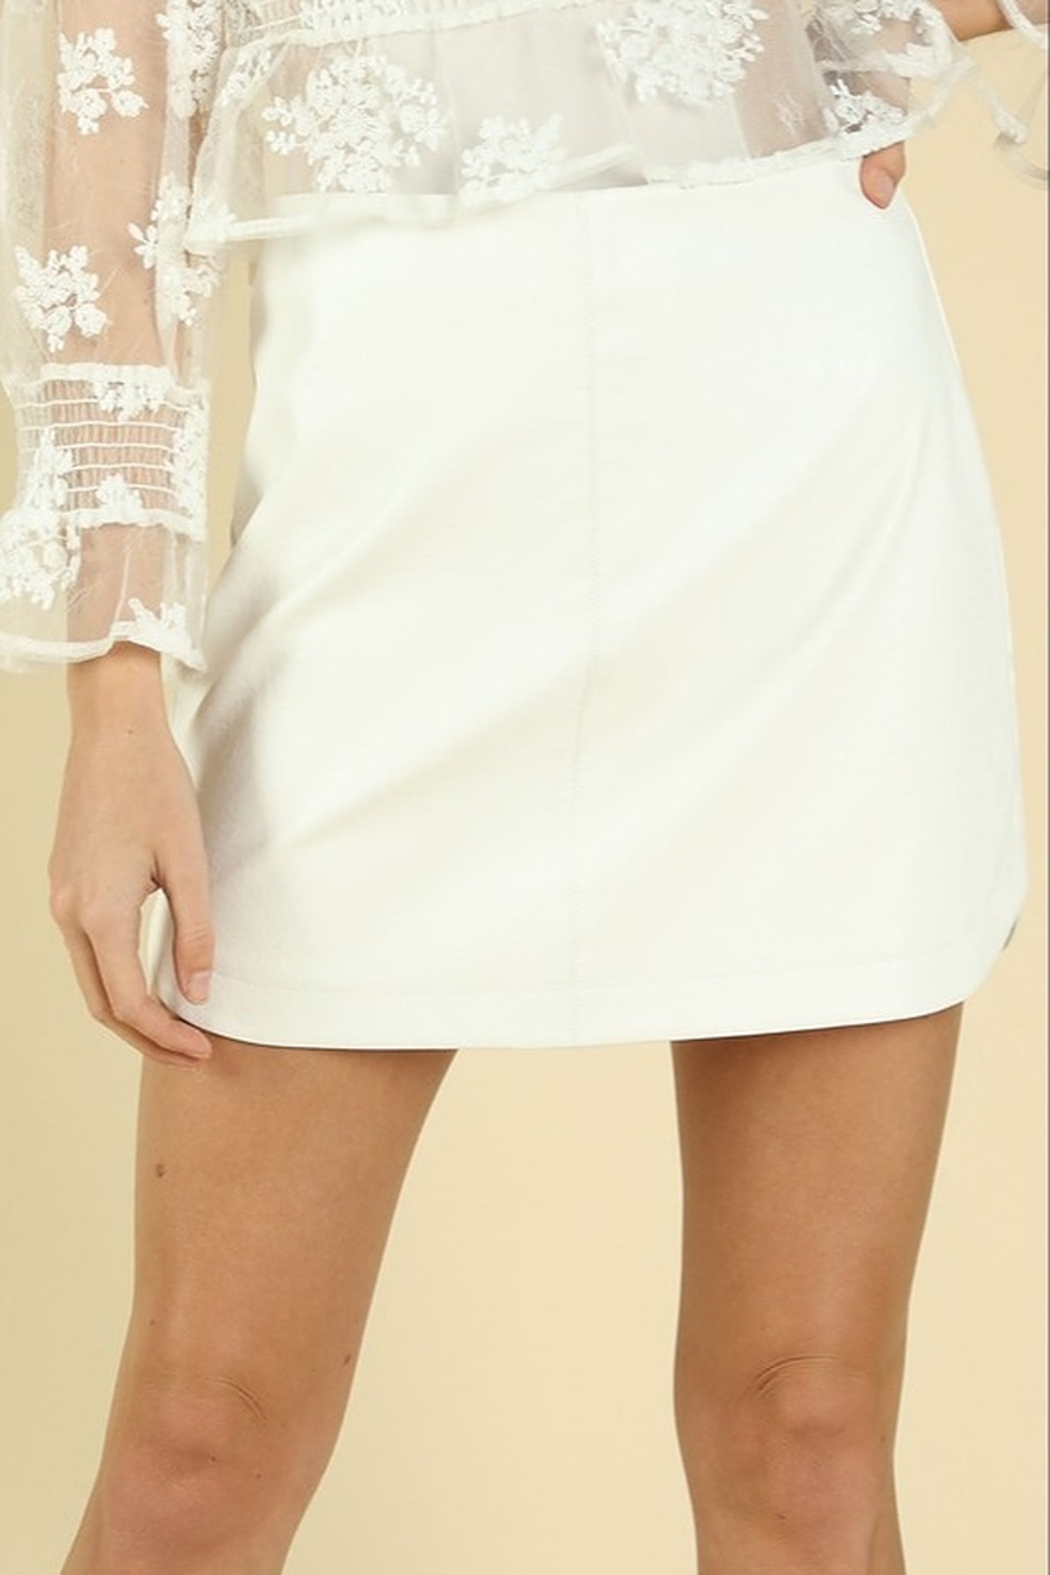 Wild Honey Faux Leather Mini Skirt - Front Cropped Image